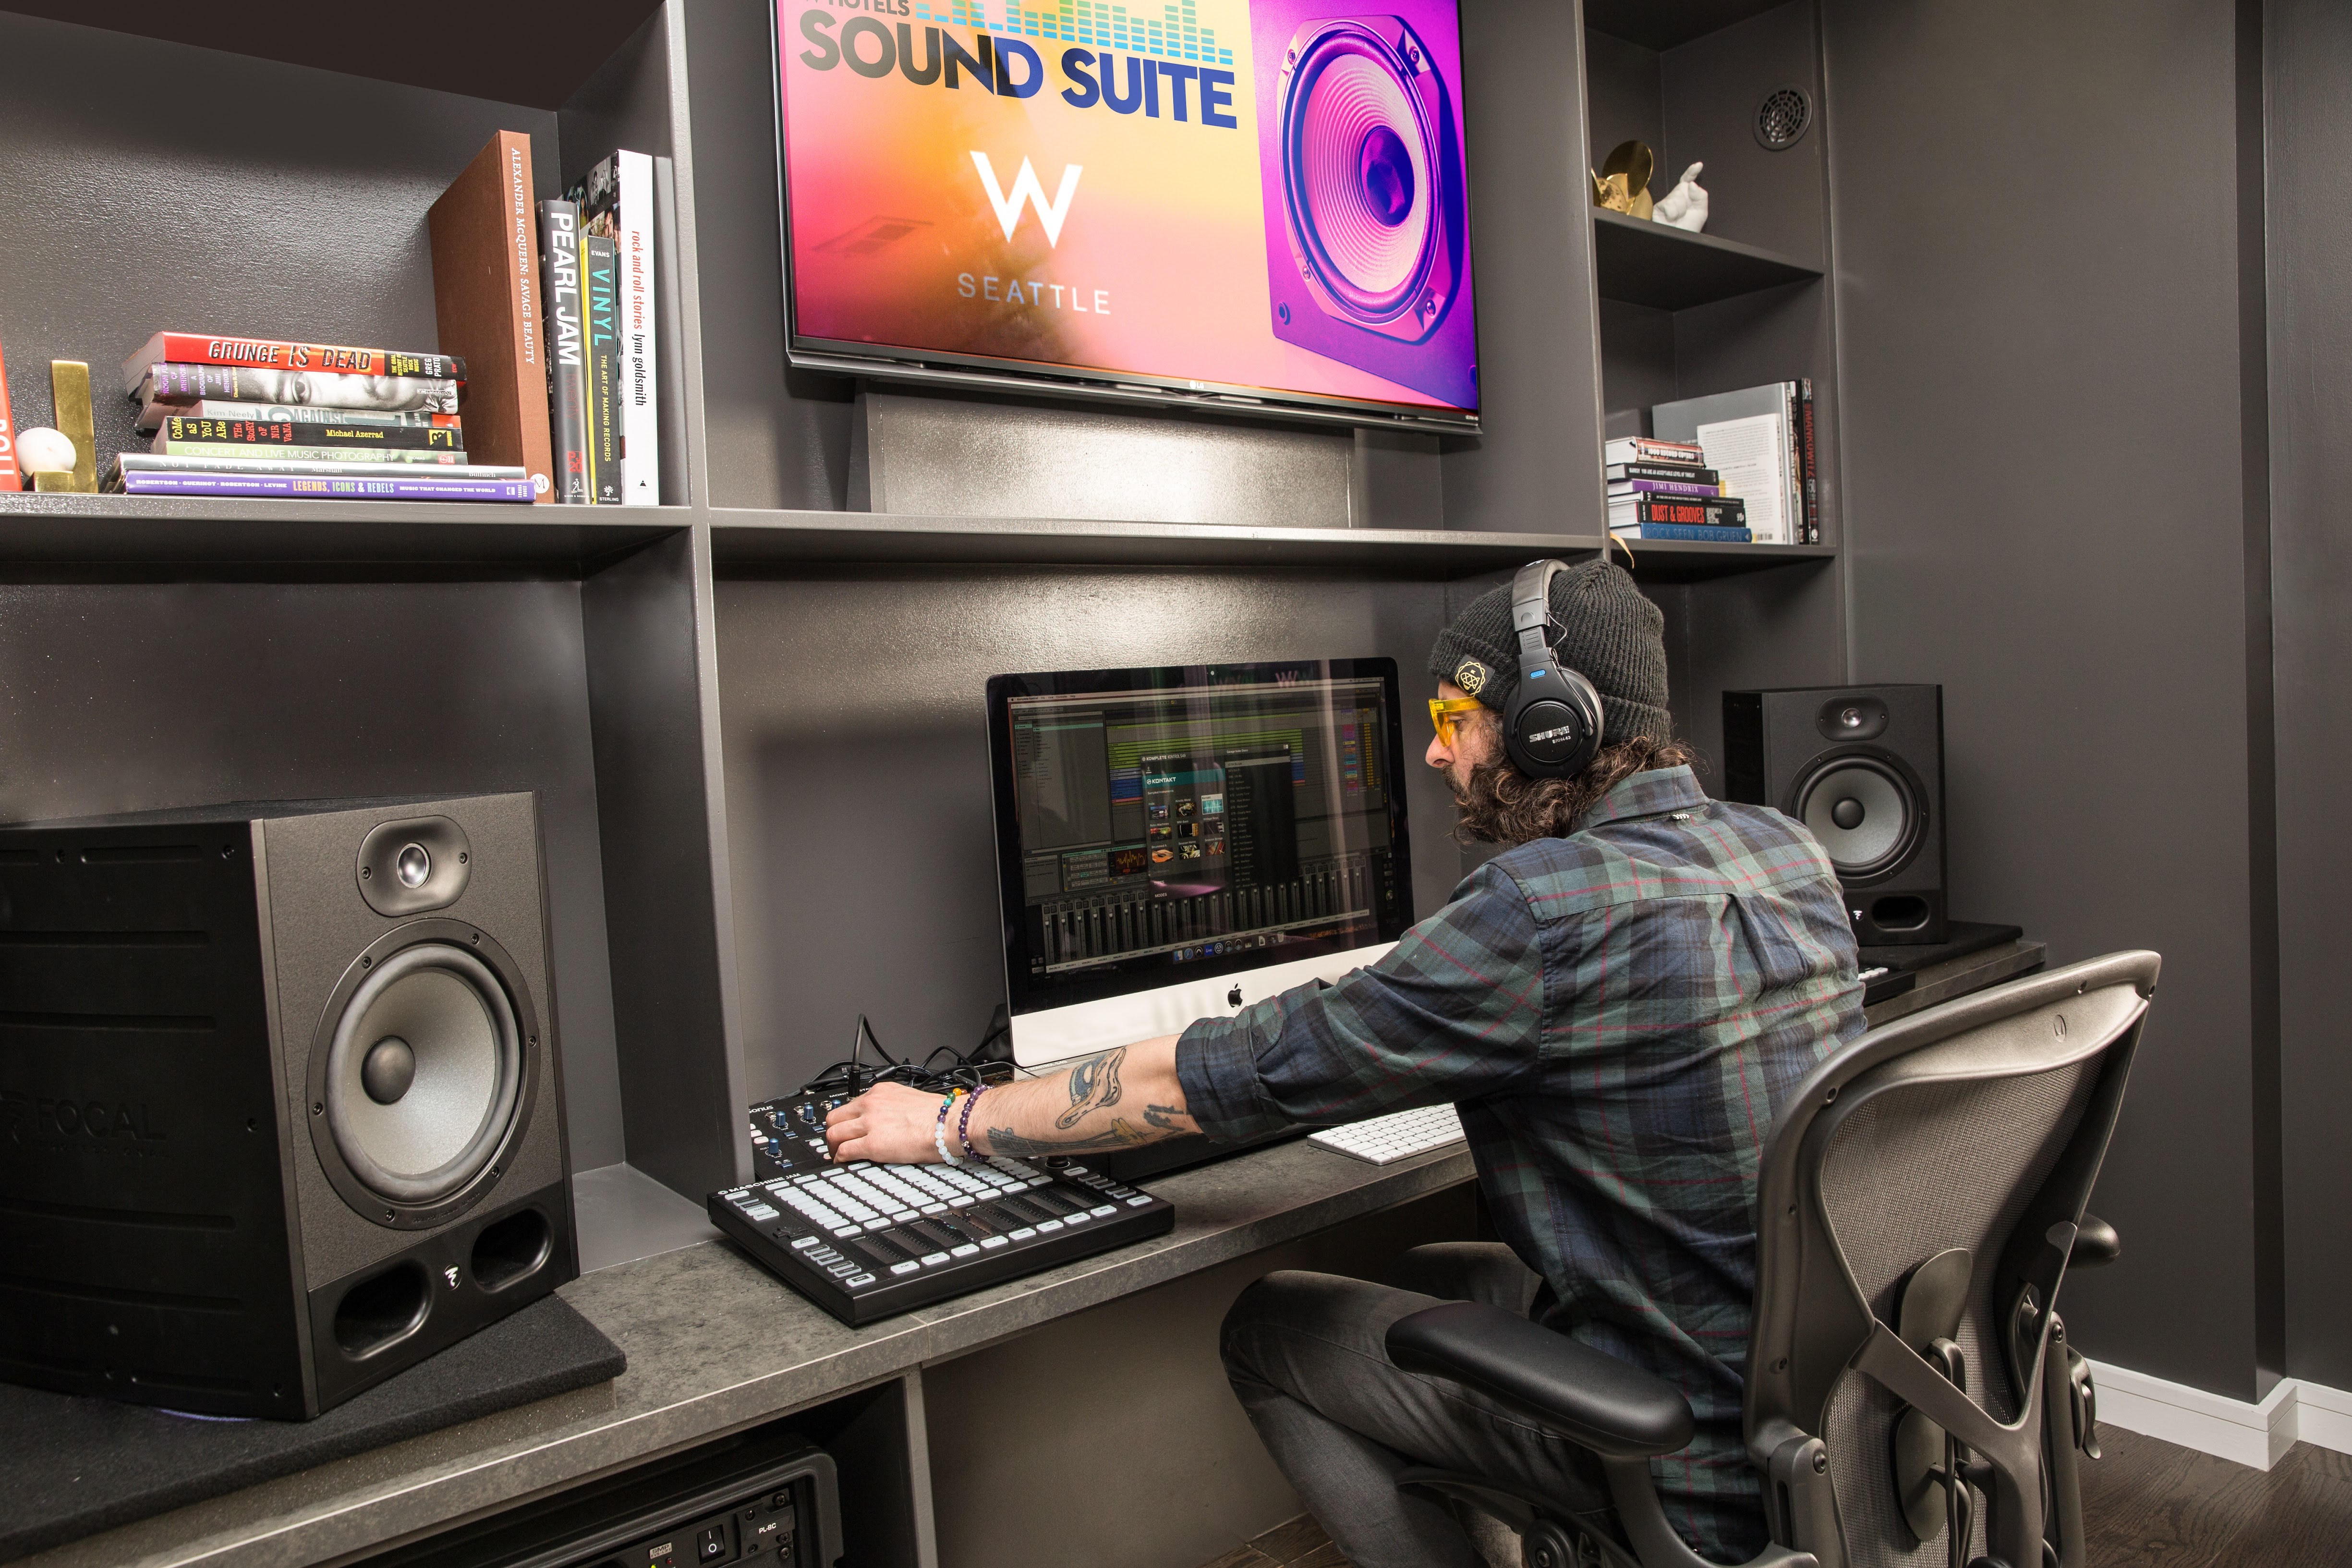 On Tuesday, April 18th, W Seattle unveiled the first W Sound Suite in North America! The private studio is fit for a traveling musician or producer who finds inspiration on the road. The fully equipped music studio has a writer's room and offers a retreat for artists to write and record. Hotel guests are also able to book the studio to play with their equipment and live out their rockstar dream! (Image: Jean Marcus Strole Photography/W Seattle)